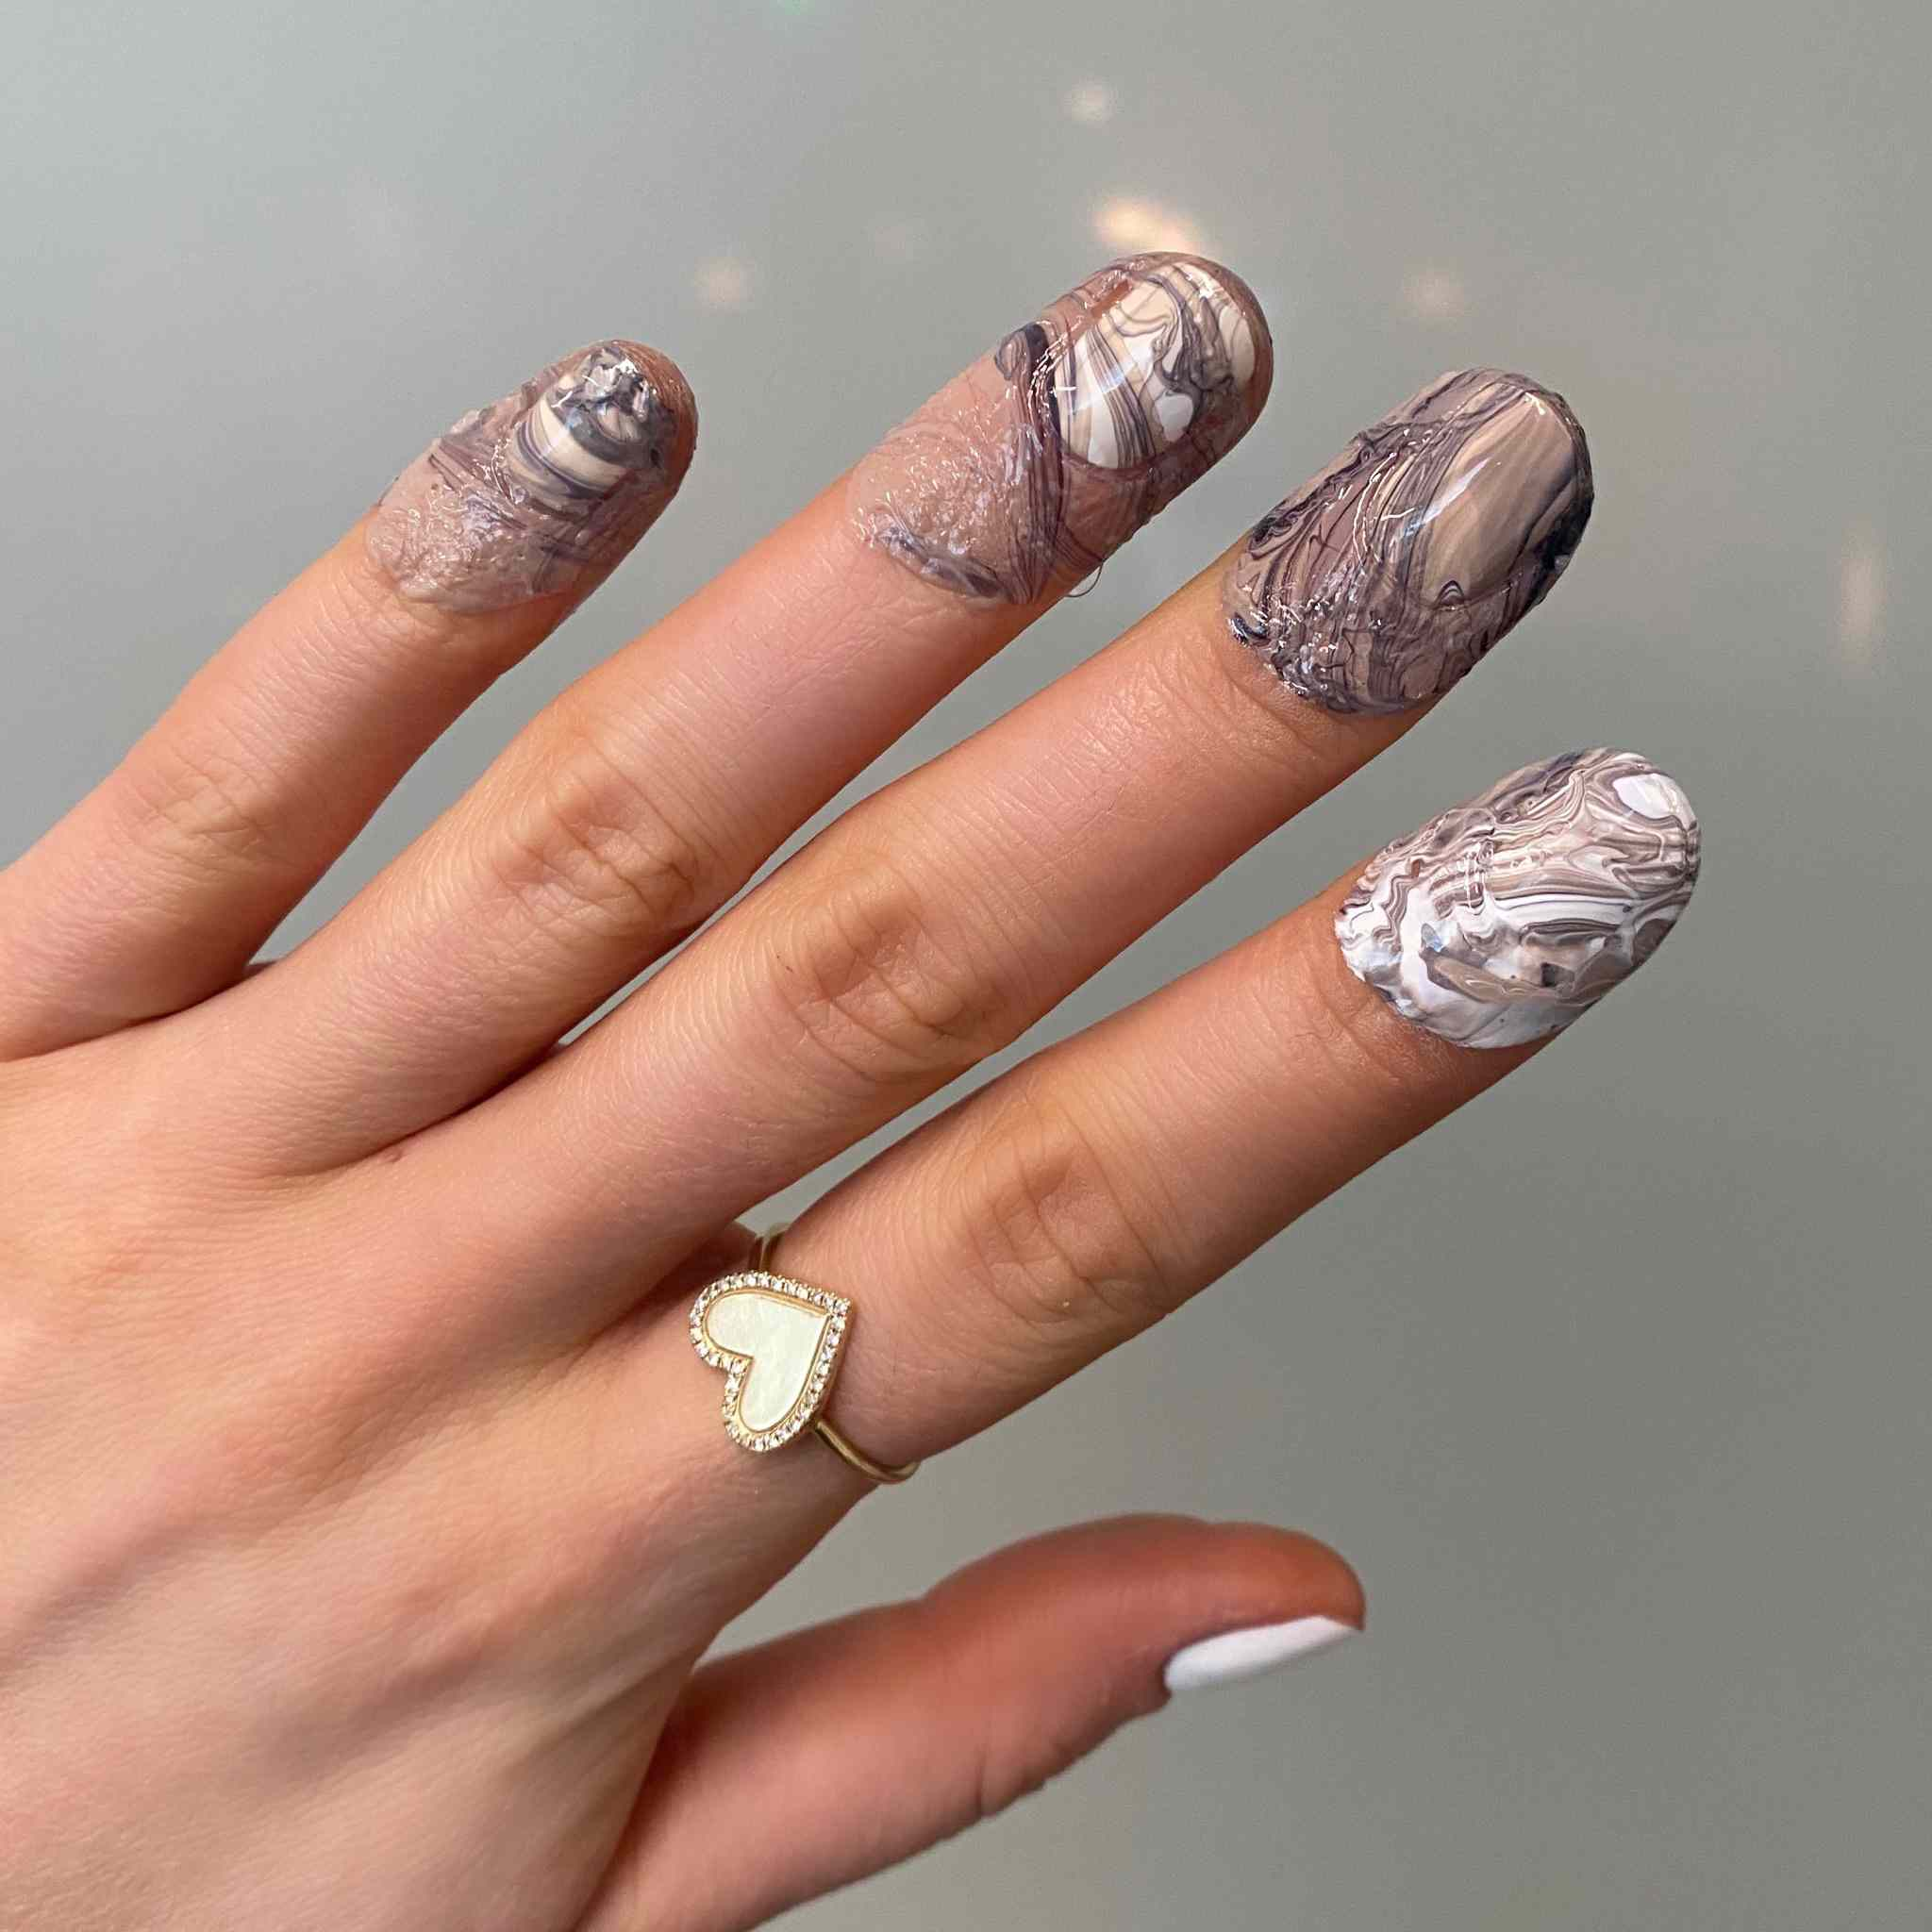 Fingers covered in nail polish.